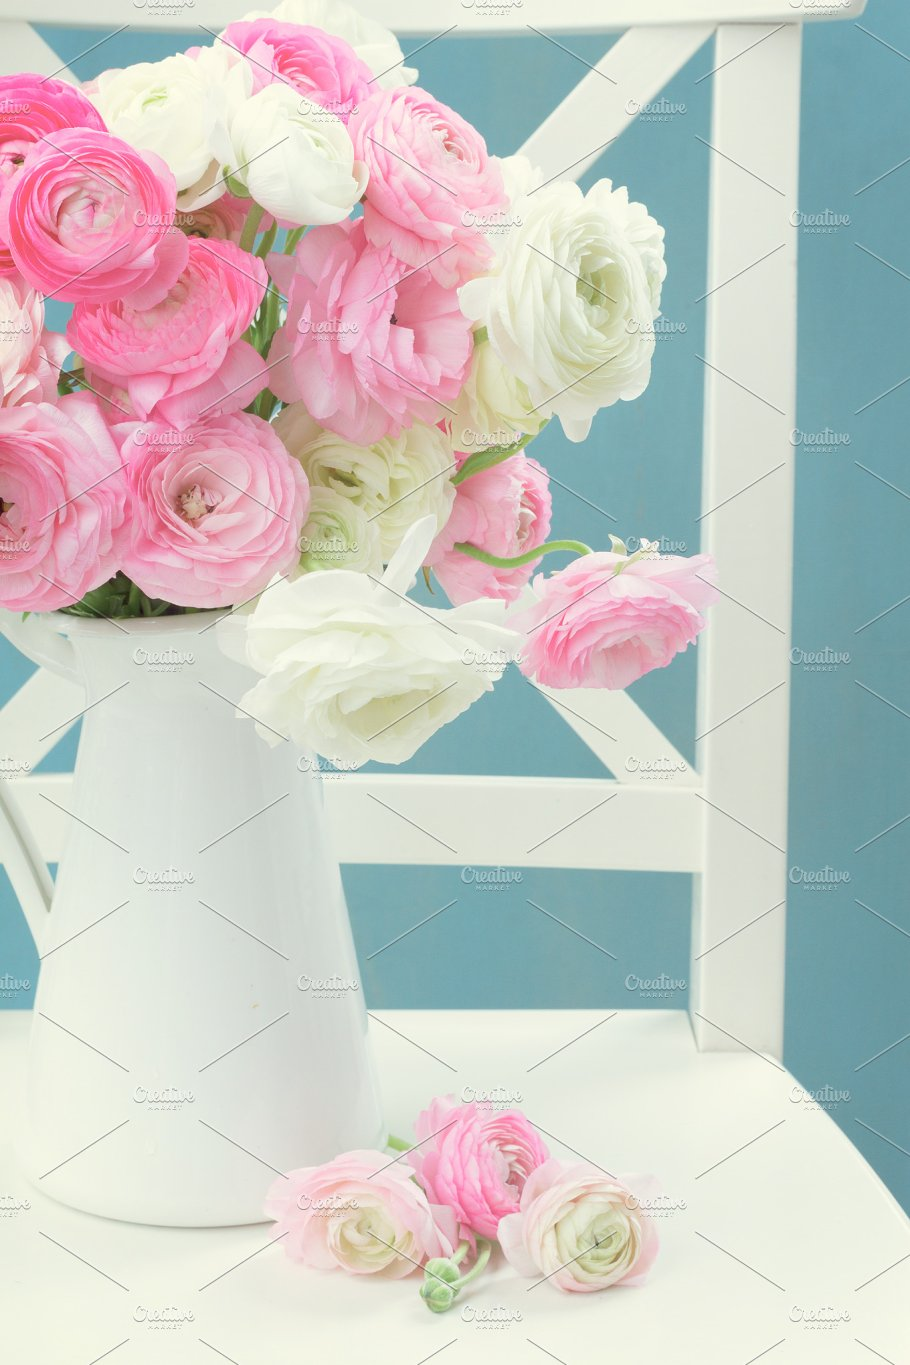 Pink And White Ranunculus Flowers Nature Photos Creative Market Pro